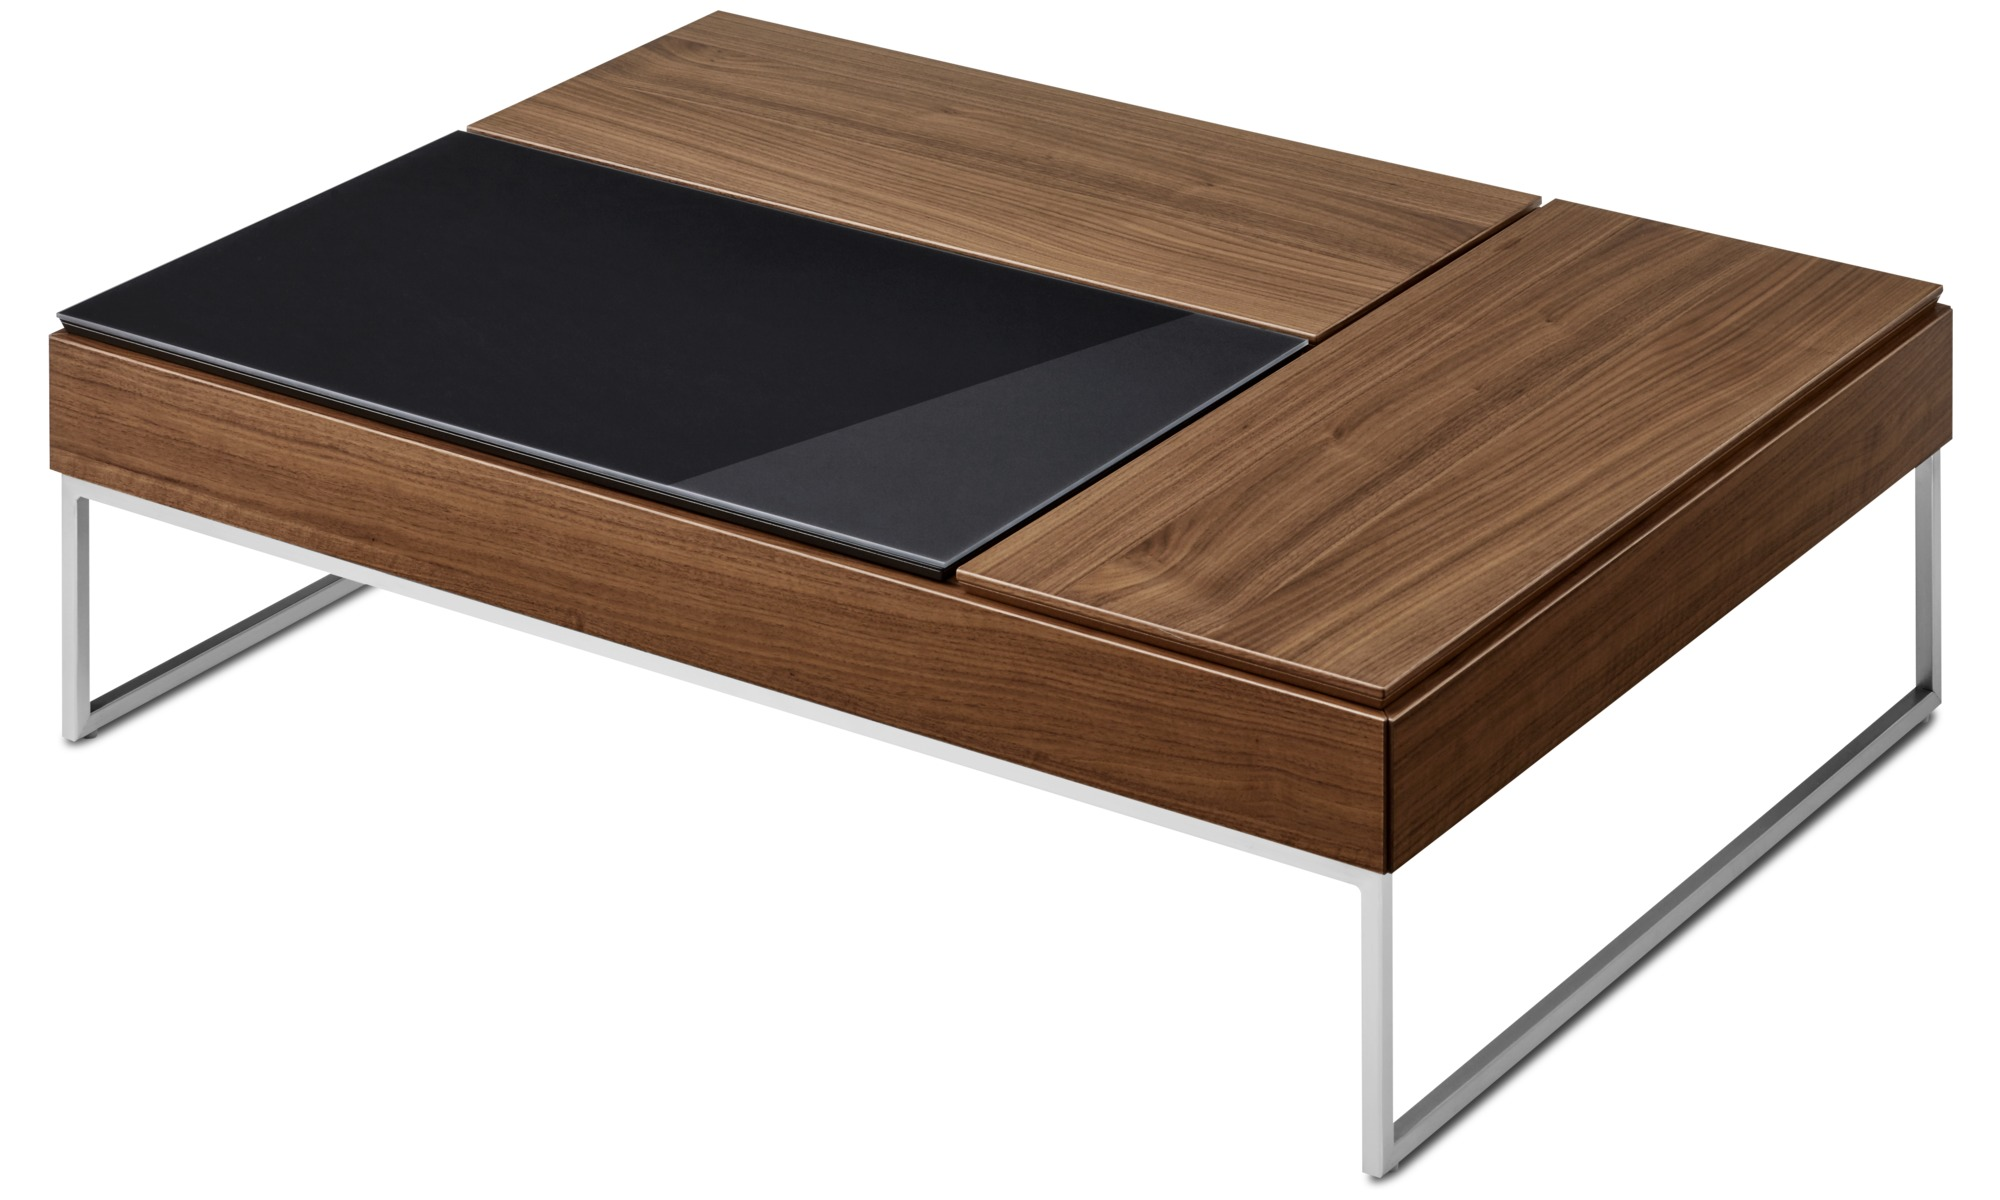 ... Coffee tables - Chiva functional coffee table with storage - square -  Brown - Walnut ...